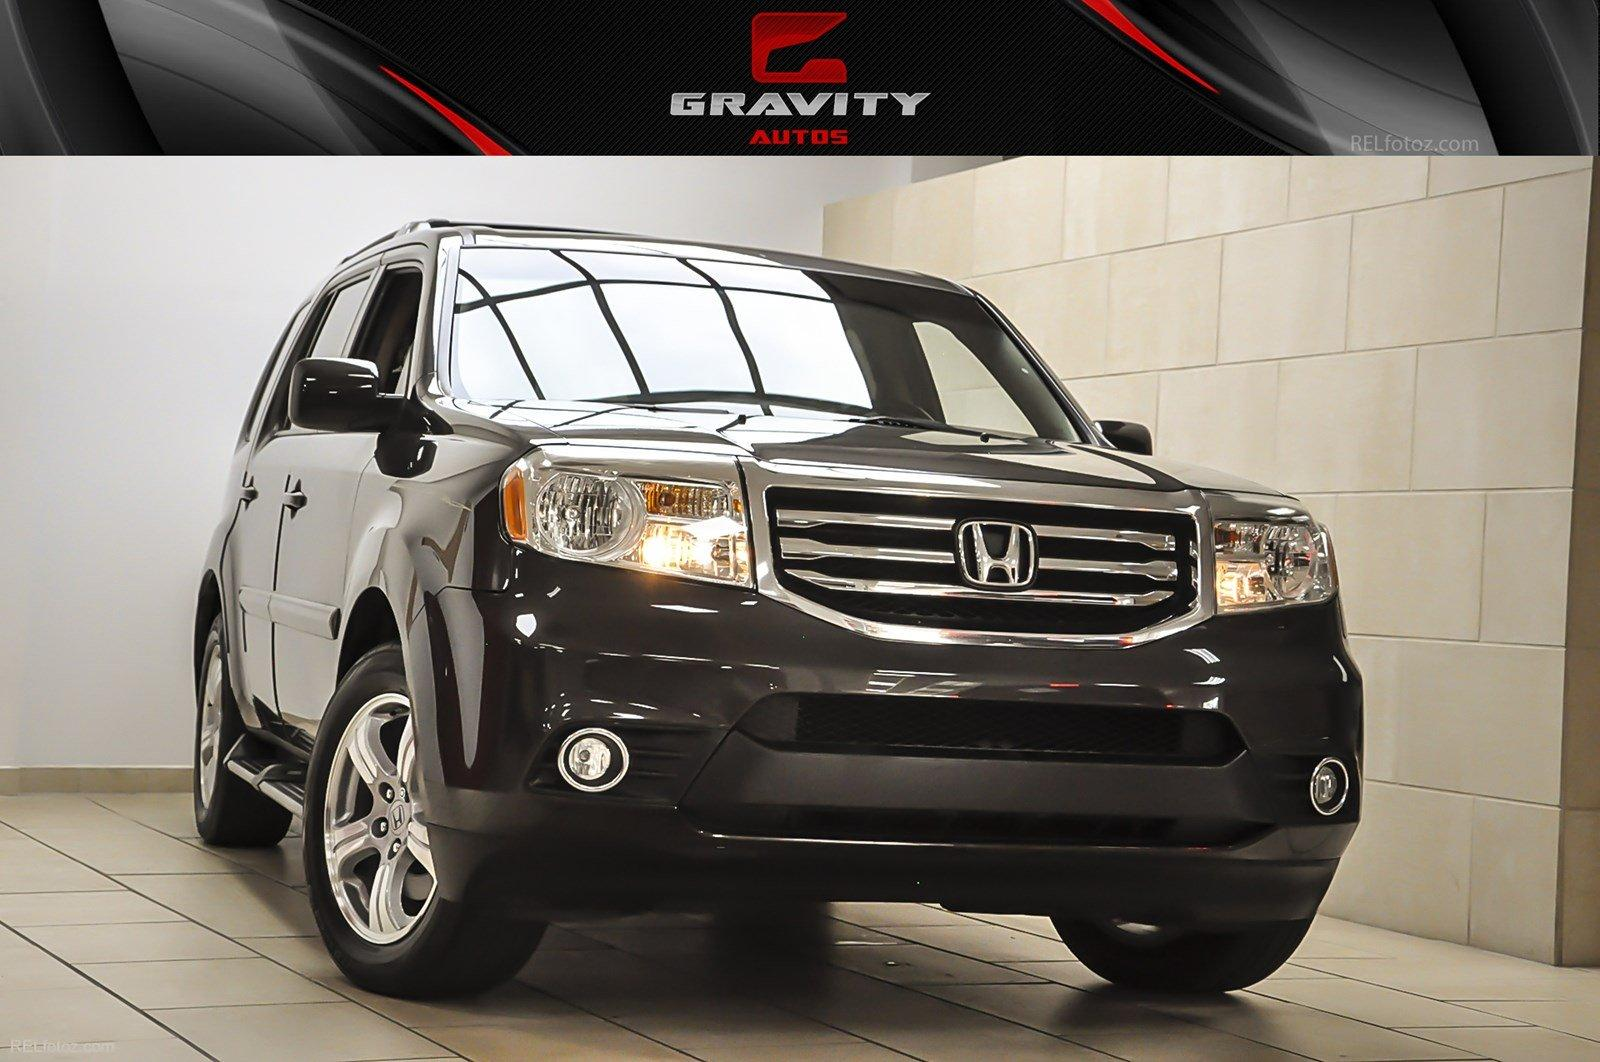 2013 Honda Pilot Ex L For Sale >> 2013 Honda Pilot Ex L Stock 021005 For Sale Near Sandy